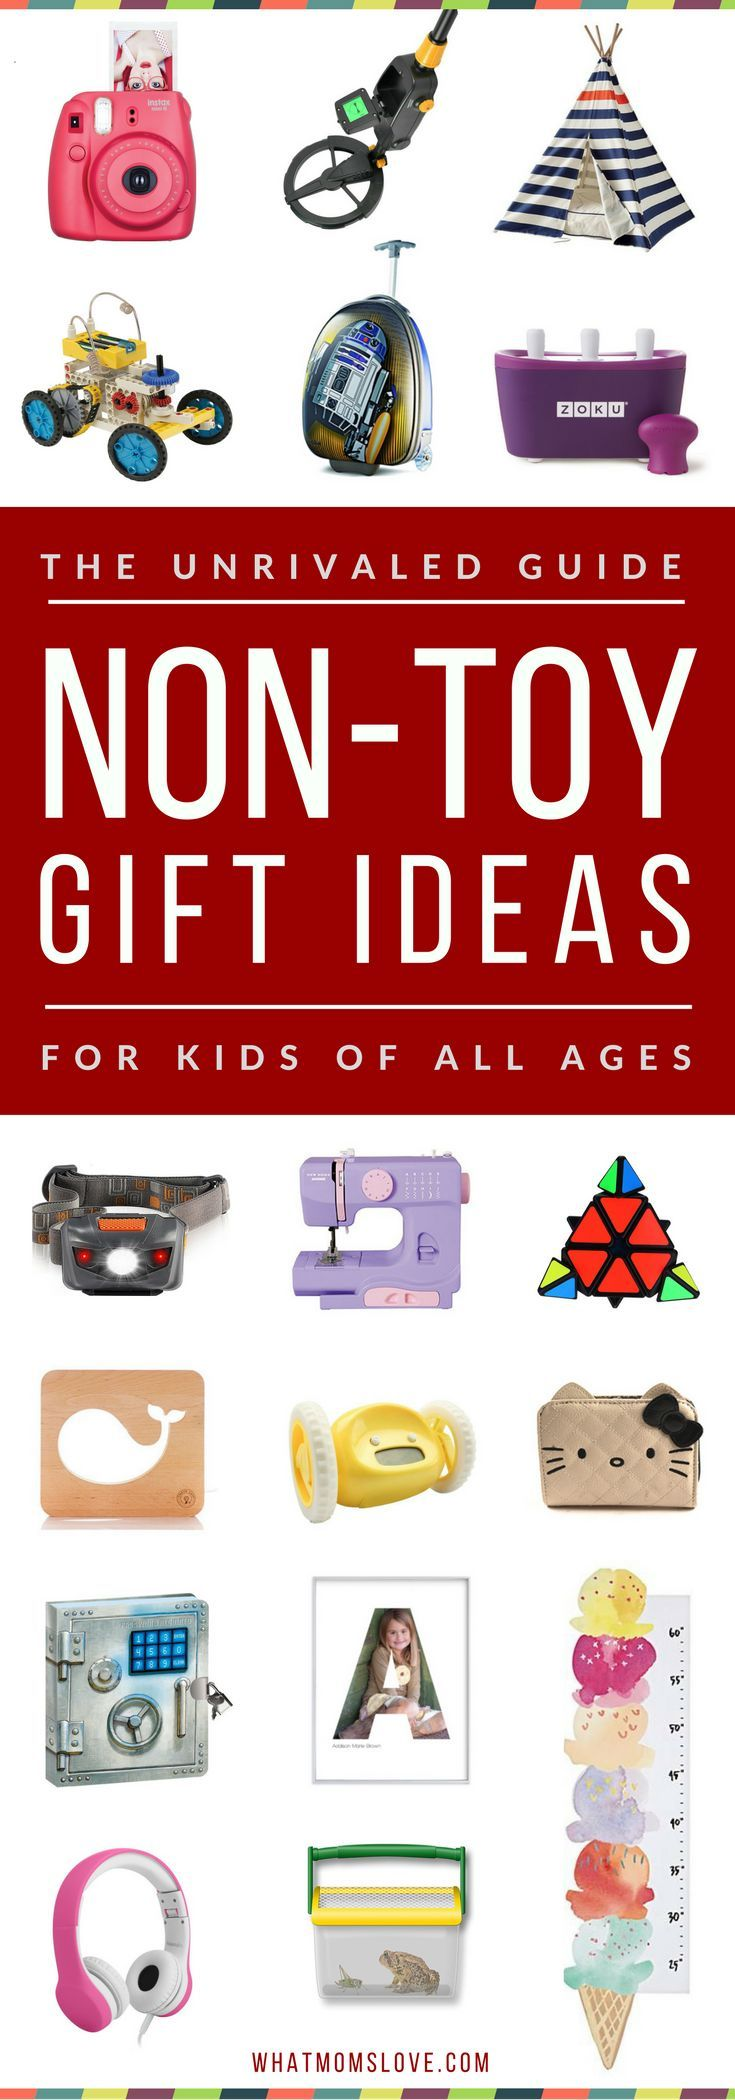 Overloaded with toys?! Learn over 200 incredible gift ideas for kids that AREN'T toys in this awesome Non-Toy Gift Guide. Perfect for toddlers to tweens and teens, girls or boys, for Holidays, birthdays and special occasions. Click for fun present ideas PLUS product recommendations, or pin for later | from What Moms Love